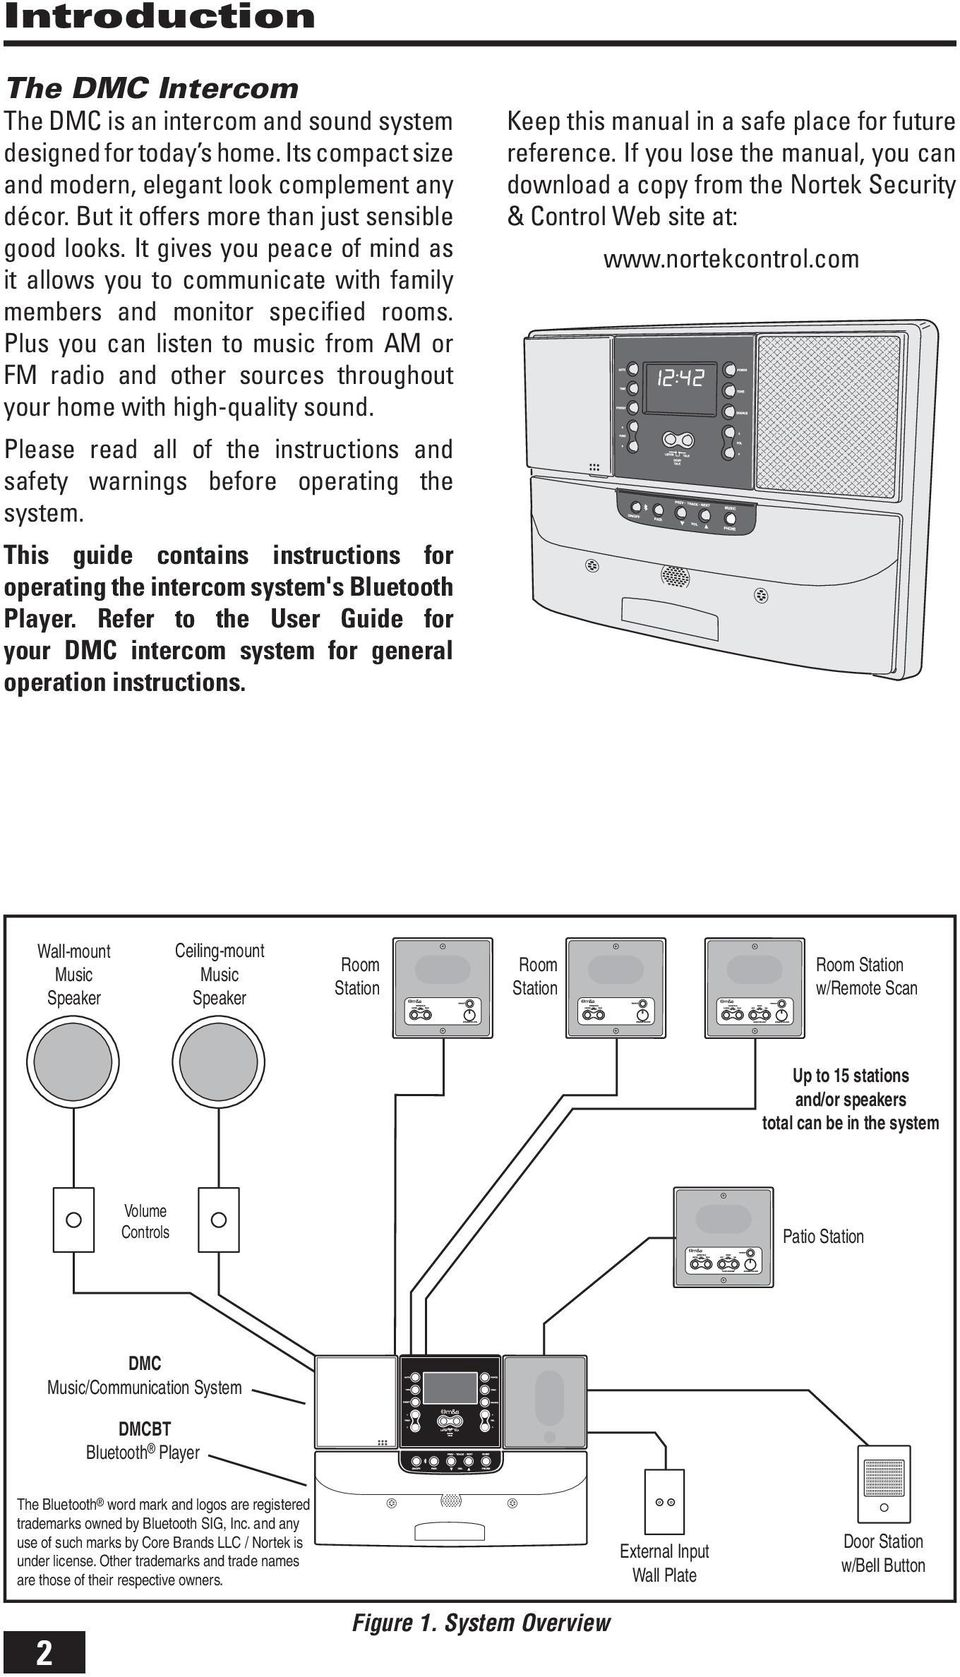 Intercom And Music System Bluetooth Player Operation User S Guide Wiring Instruction Diagram Plus You Can Listen To From Am Or Fm Radio Other Sources Throughout Your